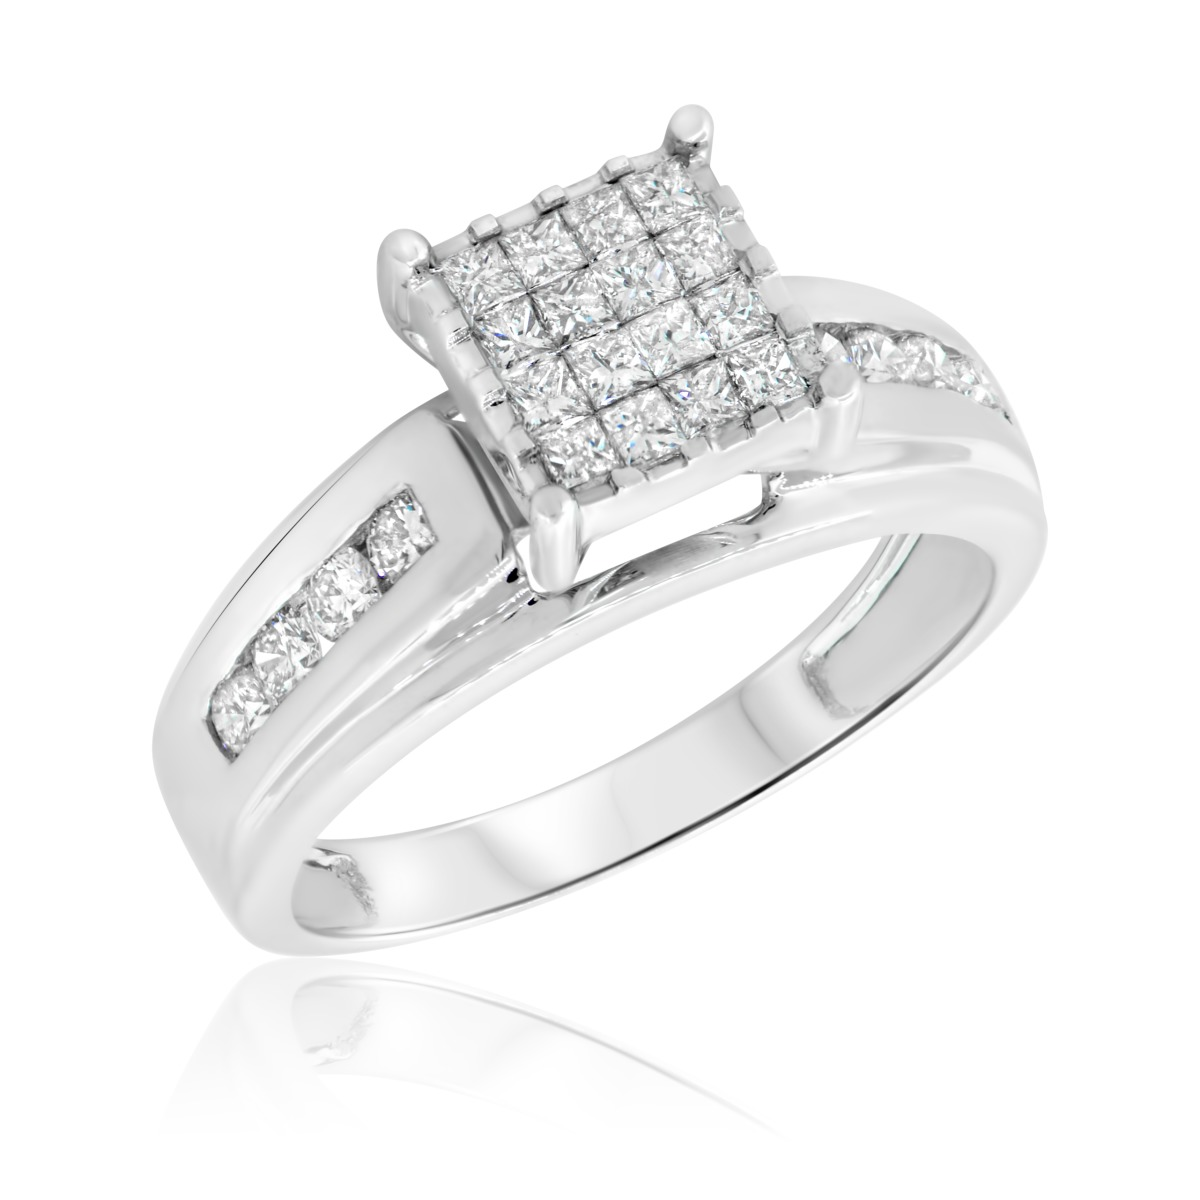 1 CT. T.W. Diamond Ladies' Engagement Ring 14K White Gold